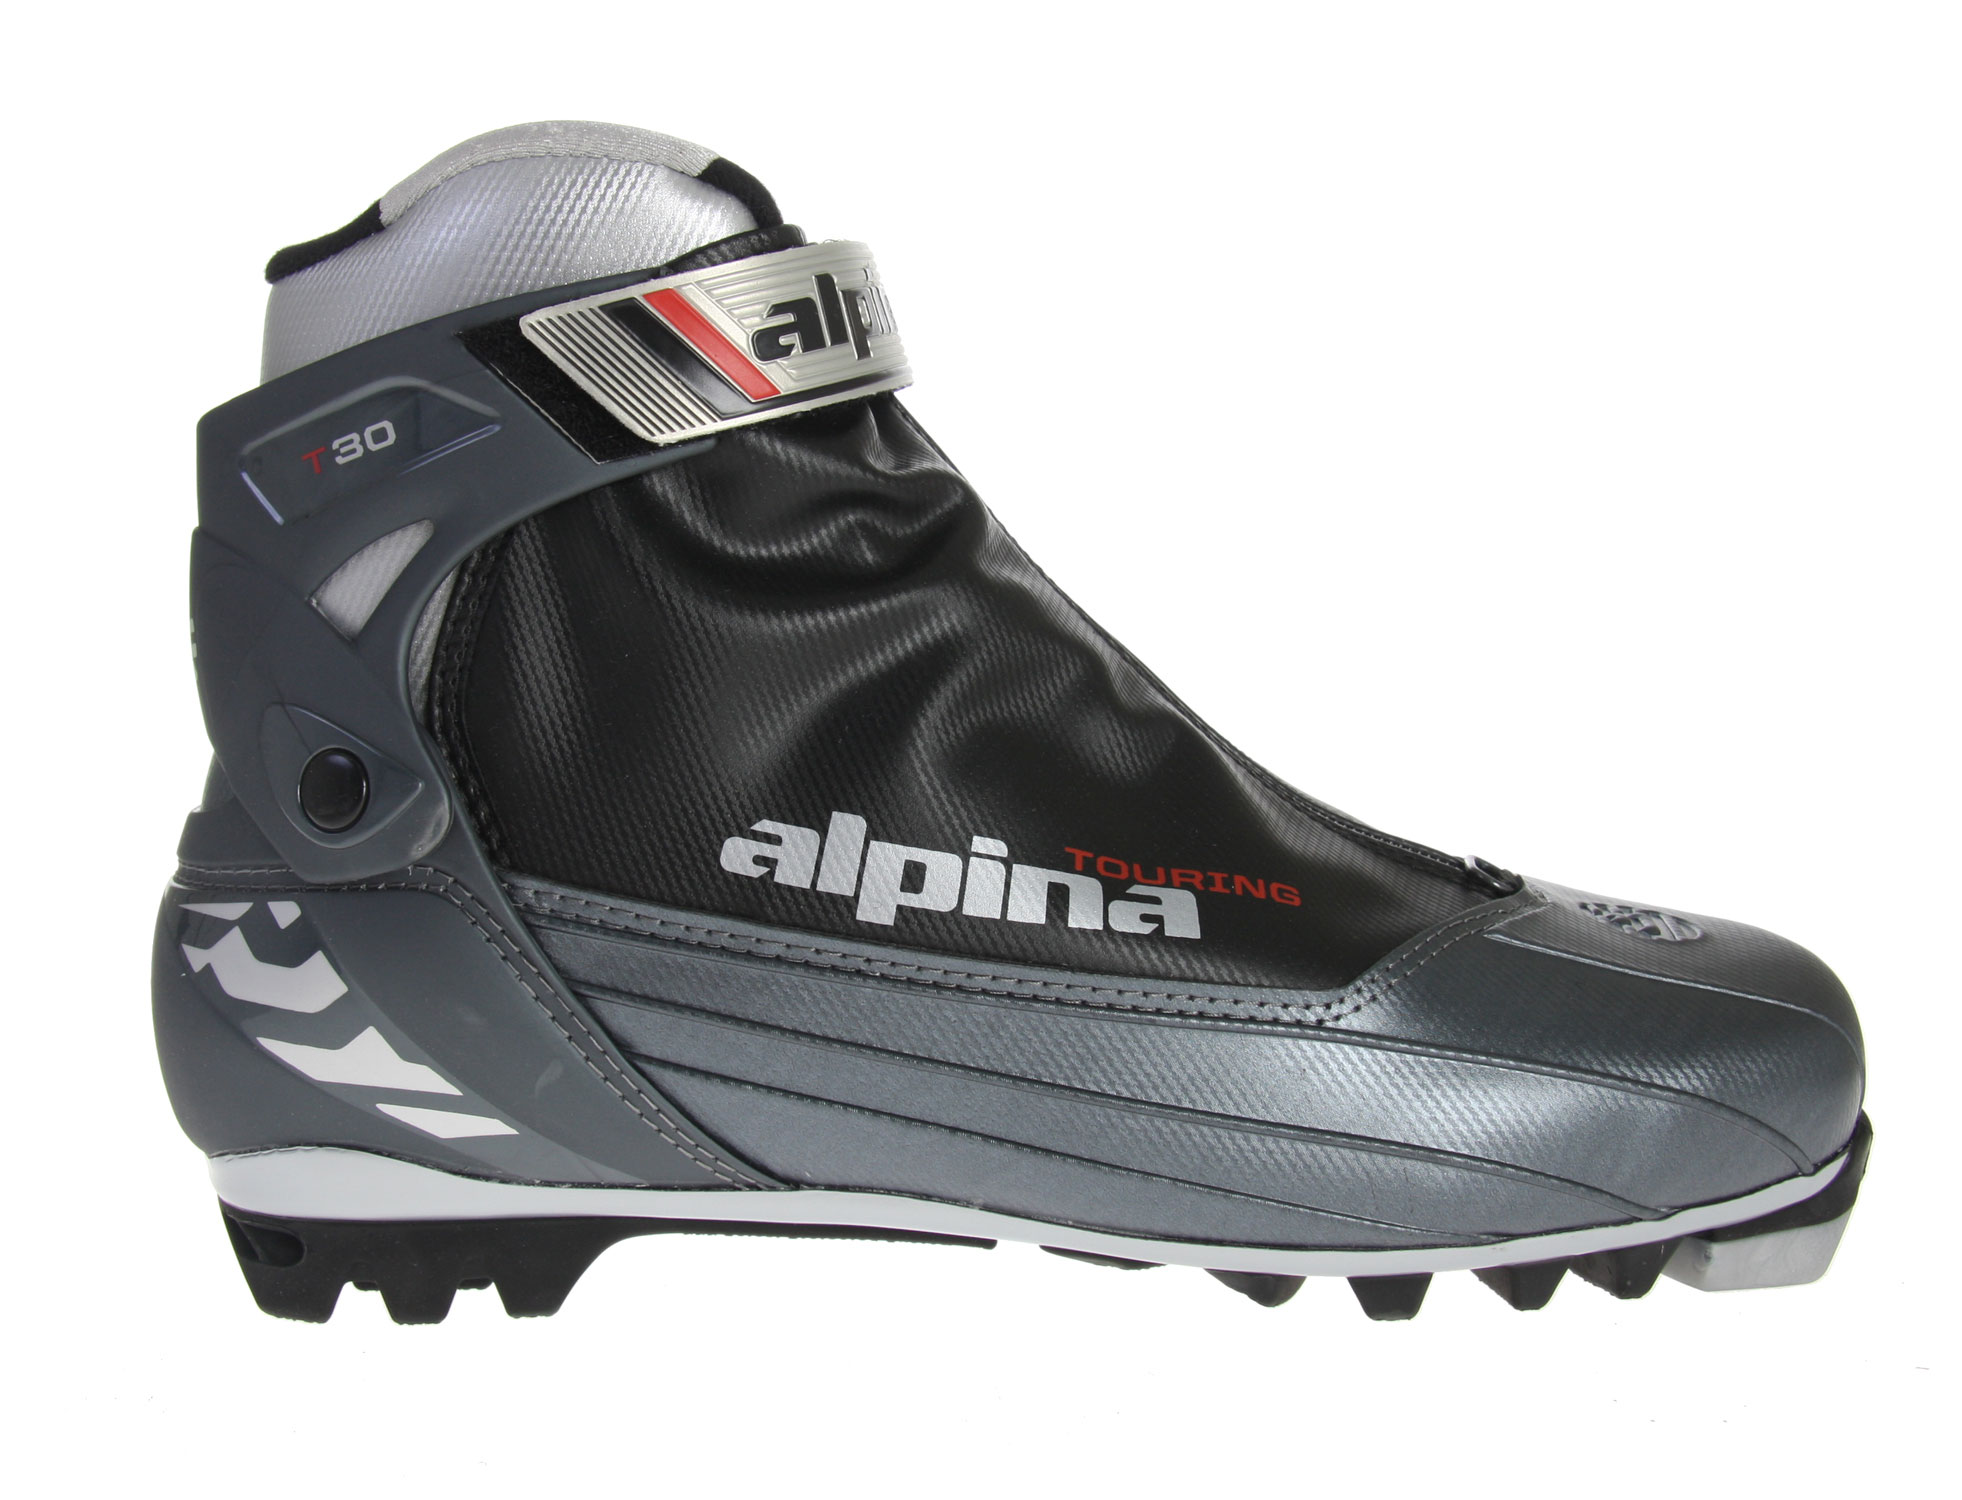 Ski The revolutionary Alpina T30 Crosscountry Ski Boots tread and stomp on the snow and rough terrain as easily as if it were simple grass. Additionally, the unique Thinsulate insulation manages to keep the feet as warm as possible without impeding the motion of the wearer. The plastic cuff and heel counter of the boot manage to crush everything the heavy boots tread on so that the powdery treachery of the slopes cannot slow the hopeful skier from living it up.Key Features of the Alpina T30 Crosscountry Ski Boots: Thinsulate insulation T4 touring sole Plastic cuff Plastic heel counter Power strap Soft boot flex Speed lacing system - $98.95